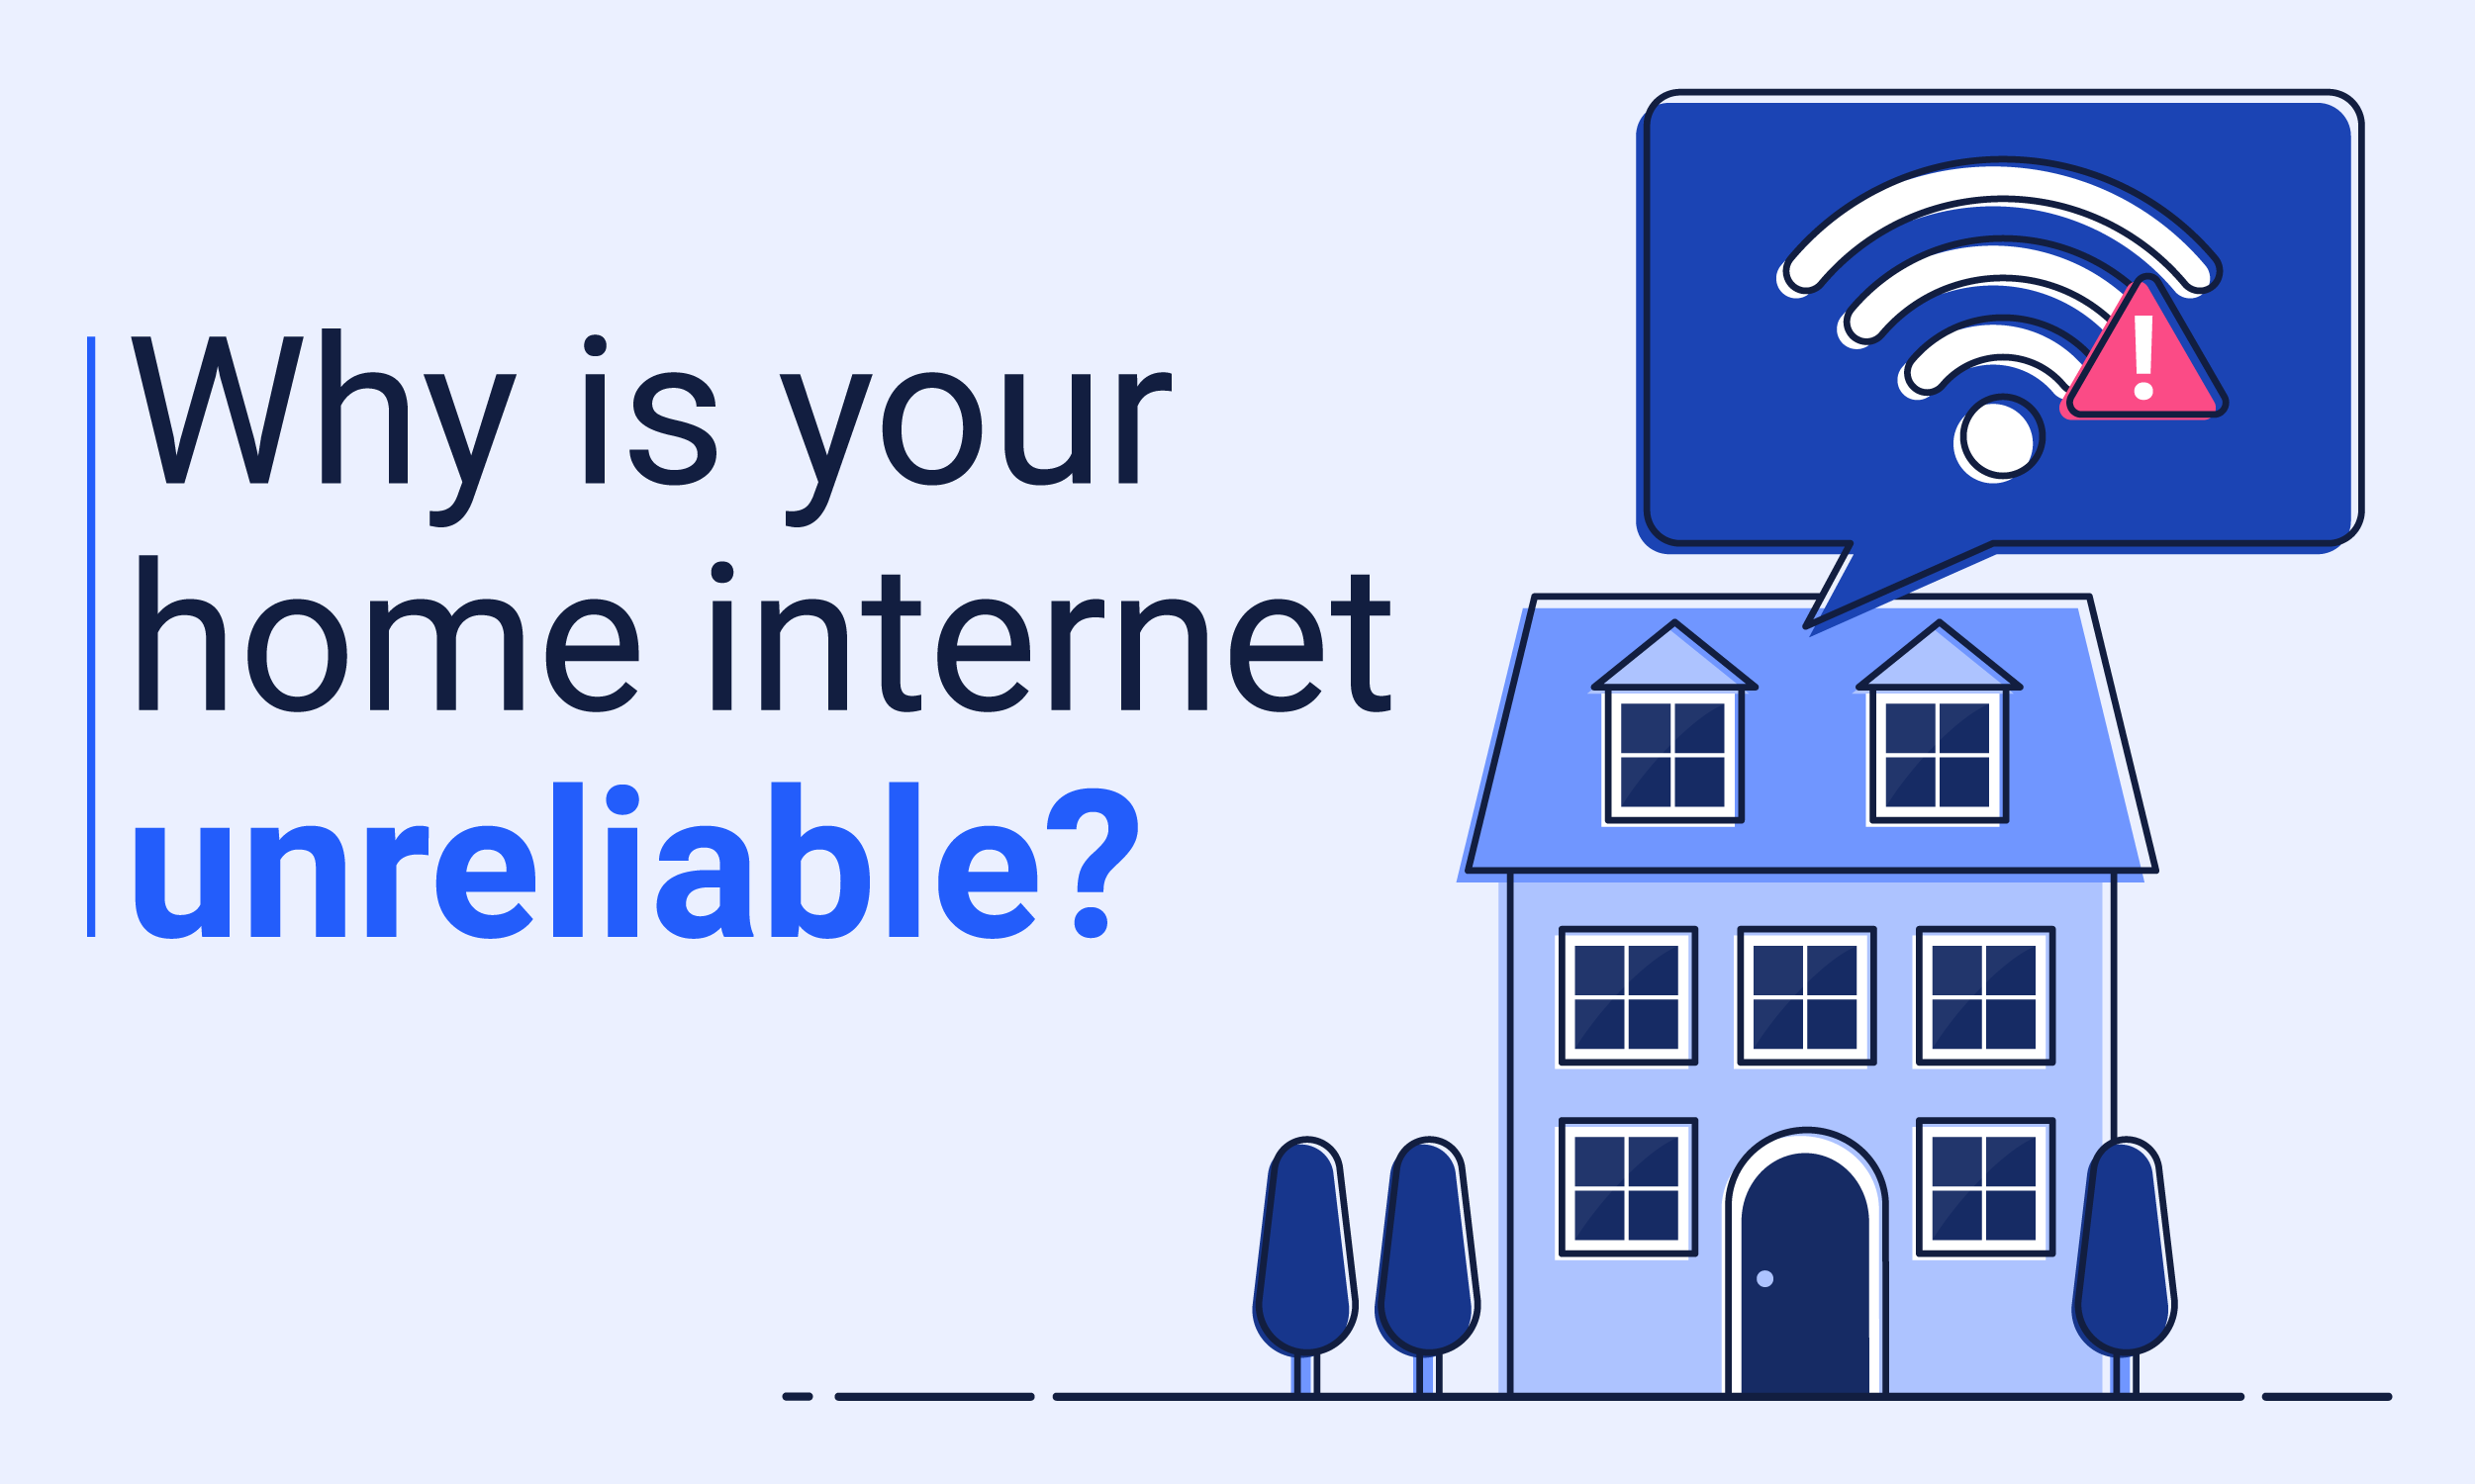 Why is your home internet unreliable